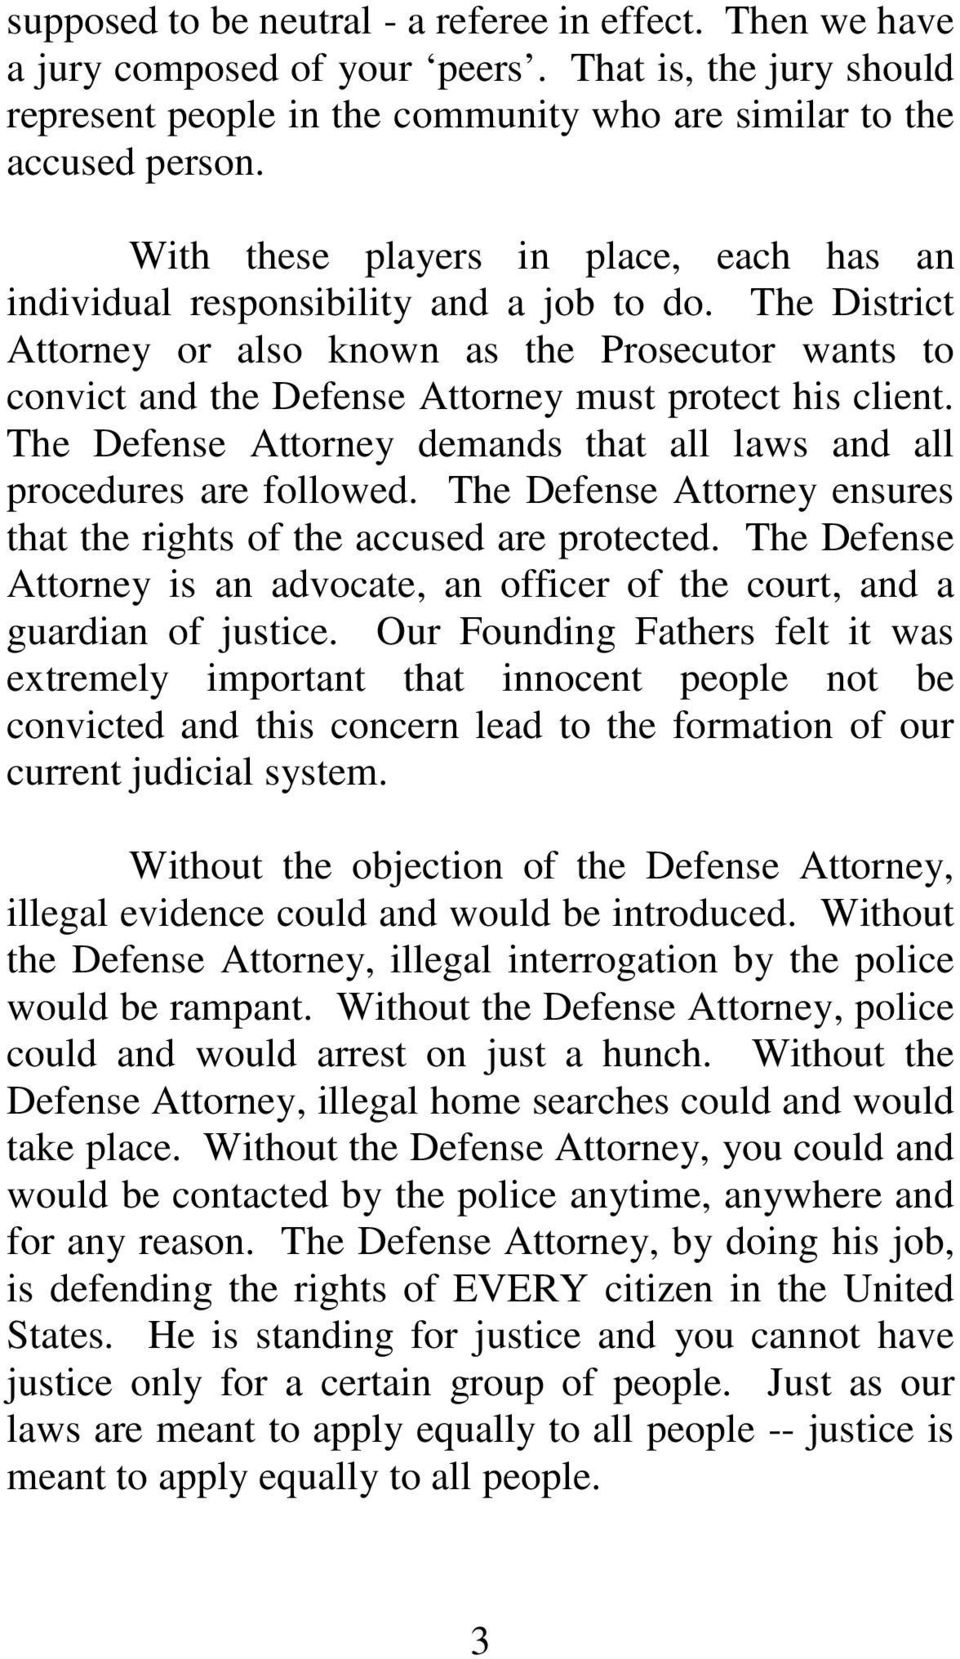 The District Attorney or also known as the Prosecutor wants to convict and the Defense Attorney must protect his client. The Defense Attorney demands that all laws and all procedures are followed.